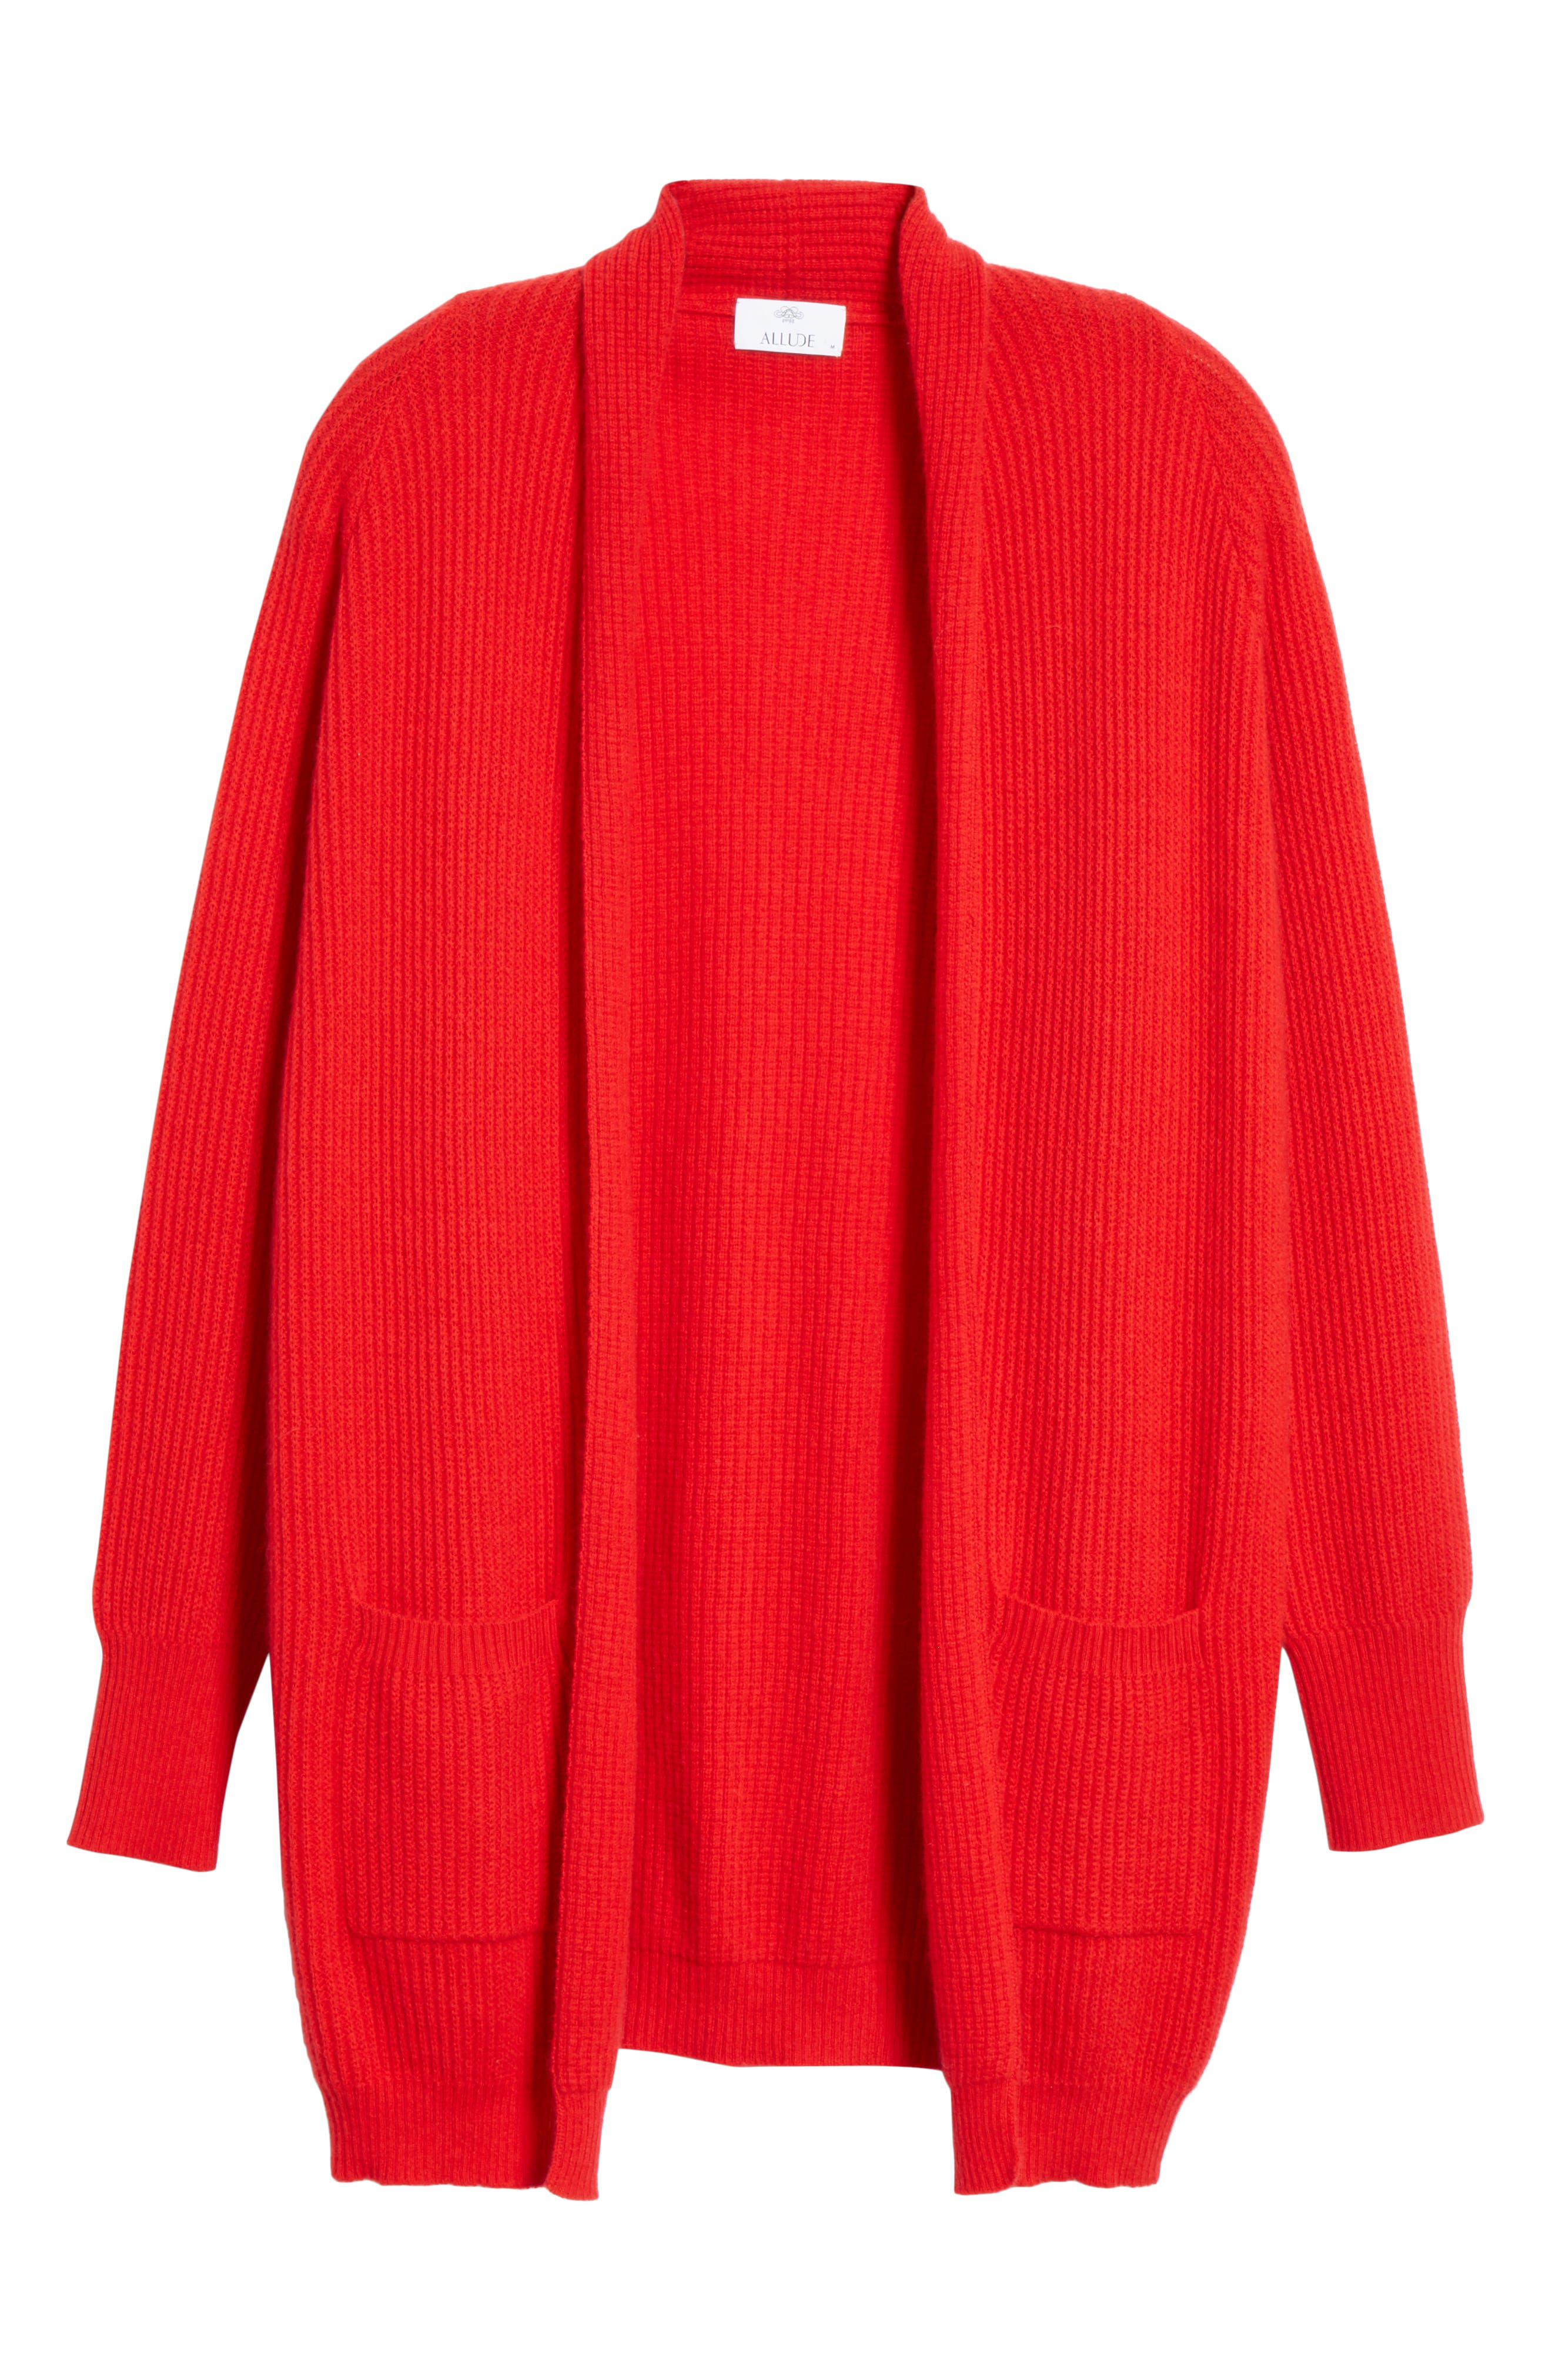 Cashmere Cardigan,                             Alternate thumbnail 6, color,                             RED